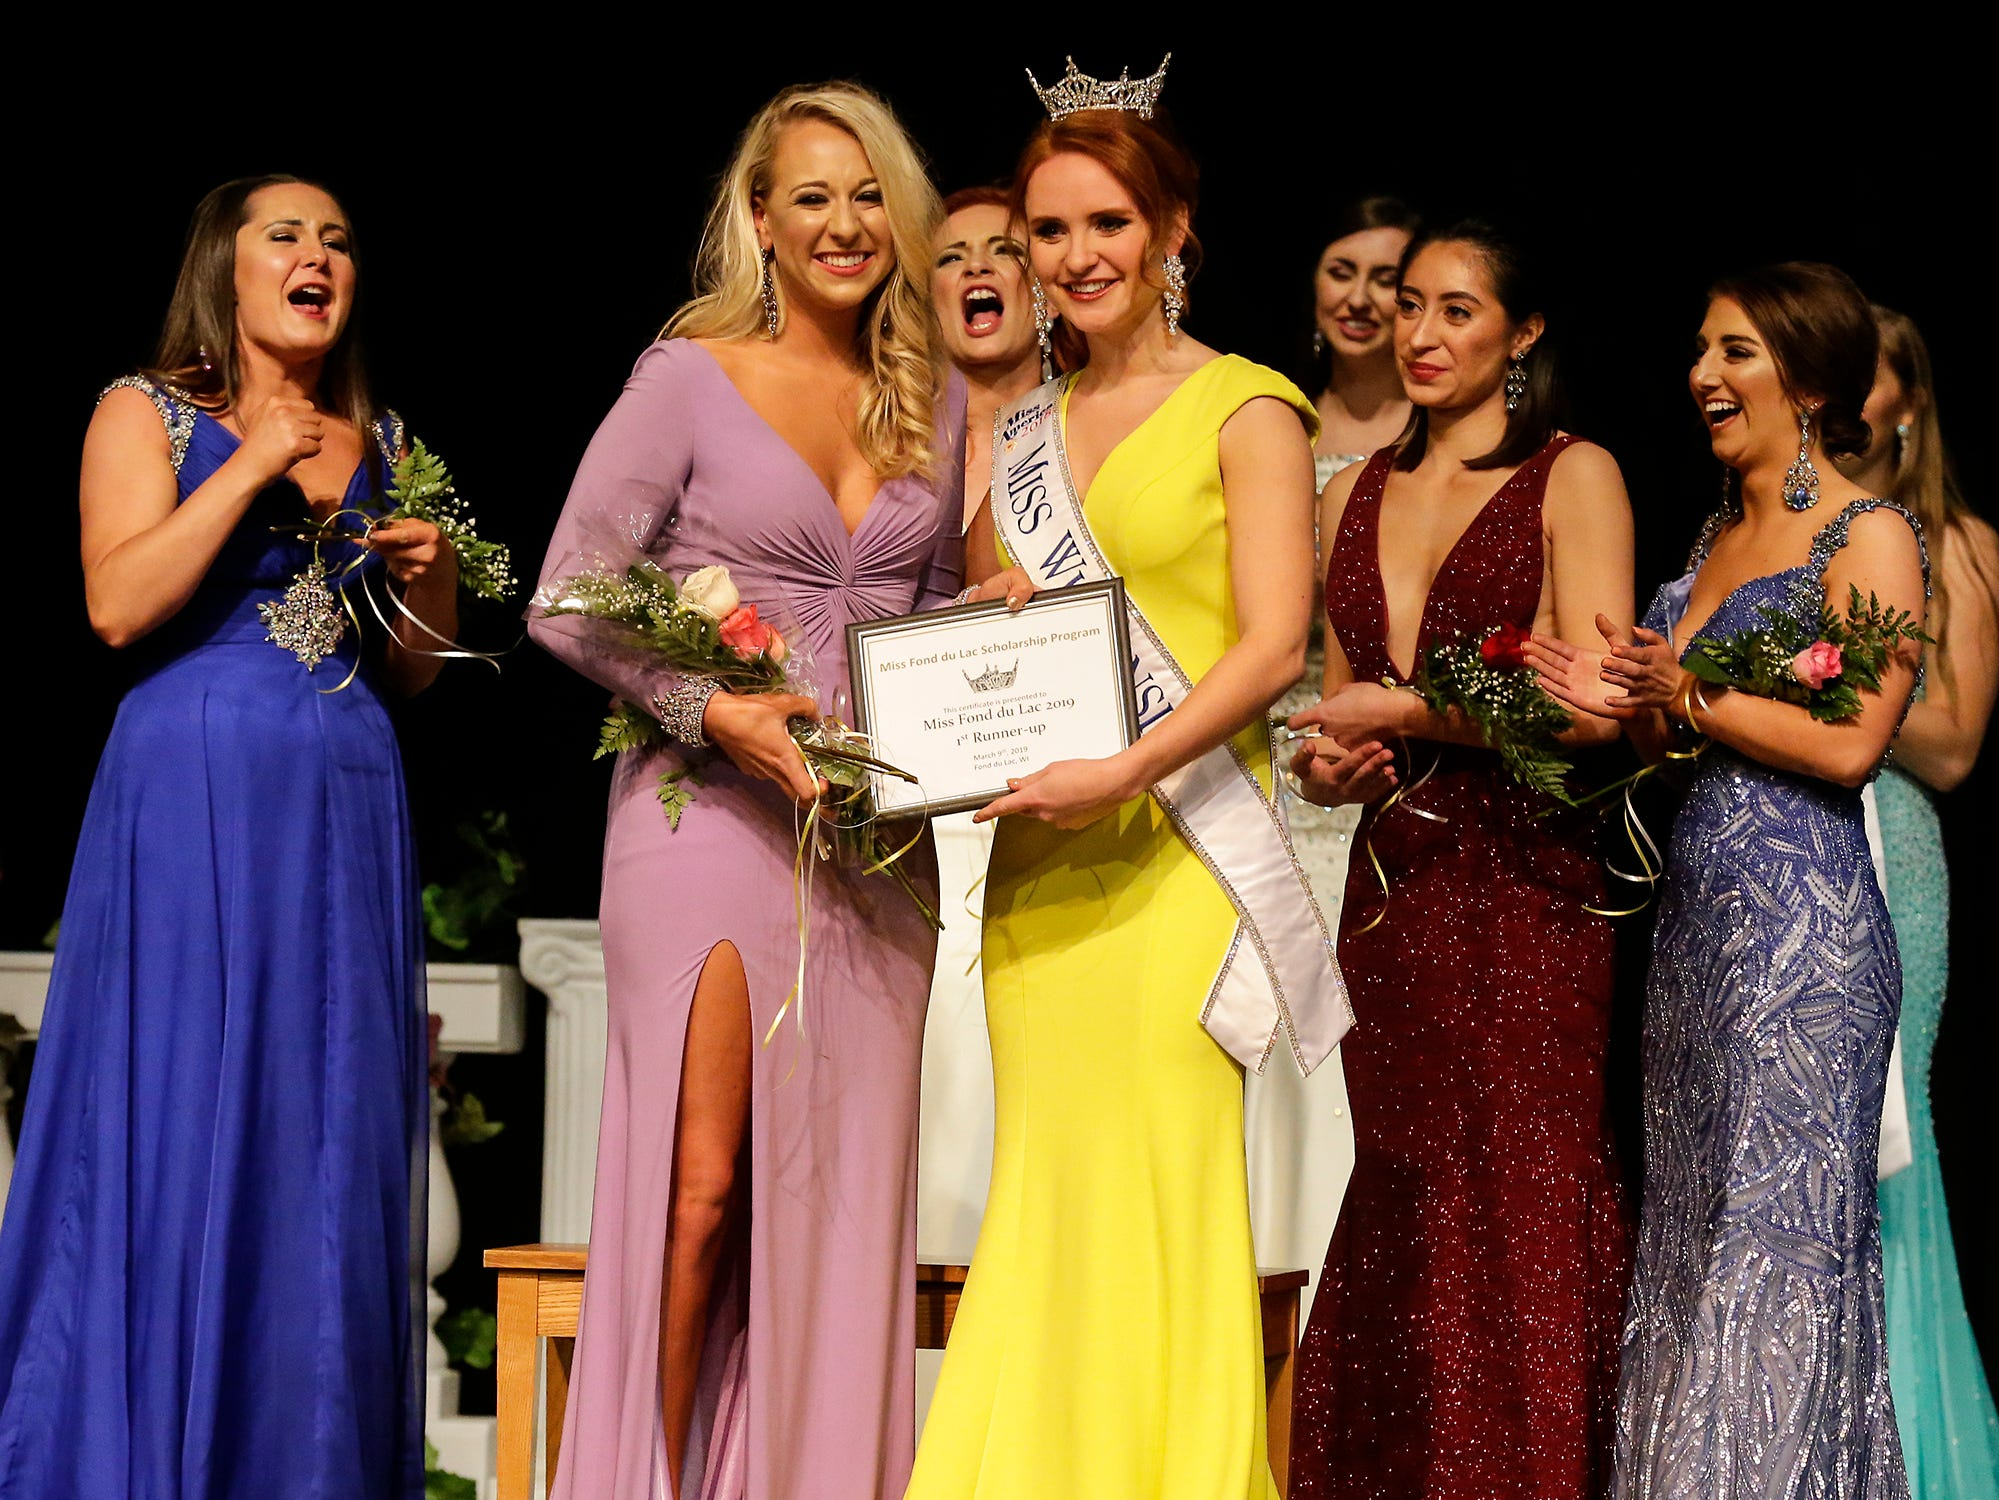 Emily VanderHouten is announced first runner up to Miss Fond du Lac during the Miss Fond du Lac, Miss Wisconsin Central and Miss Fond du Lac's Outstanding Teen 2019 scholarship competitions Saturday, March 9, 2019 at the Goodrich Little Theater in Fond du Lac, Wis. Doug Raflik/USA TODAY NETWORK-Wisconsin